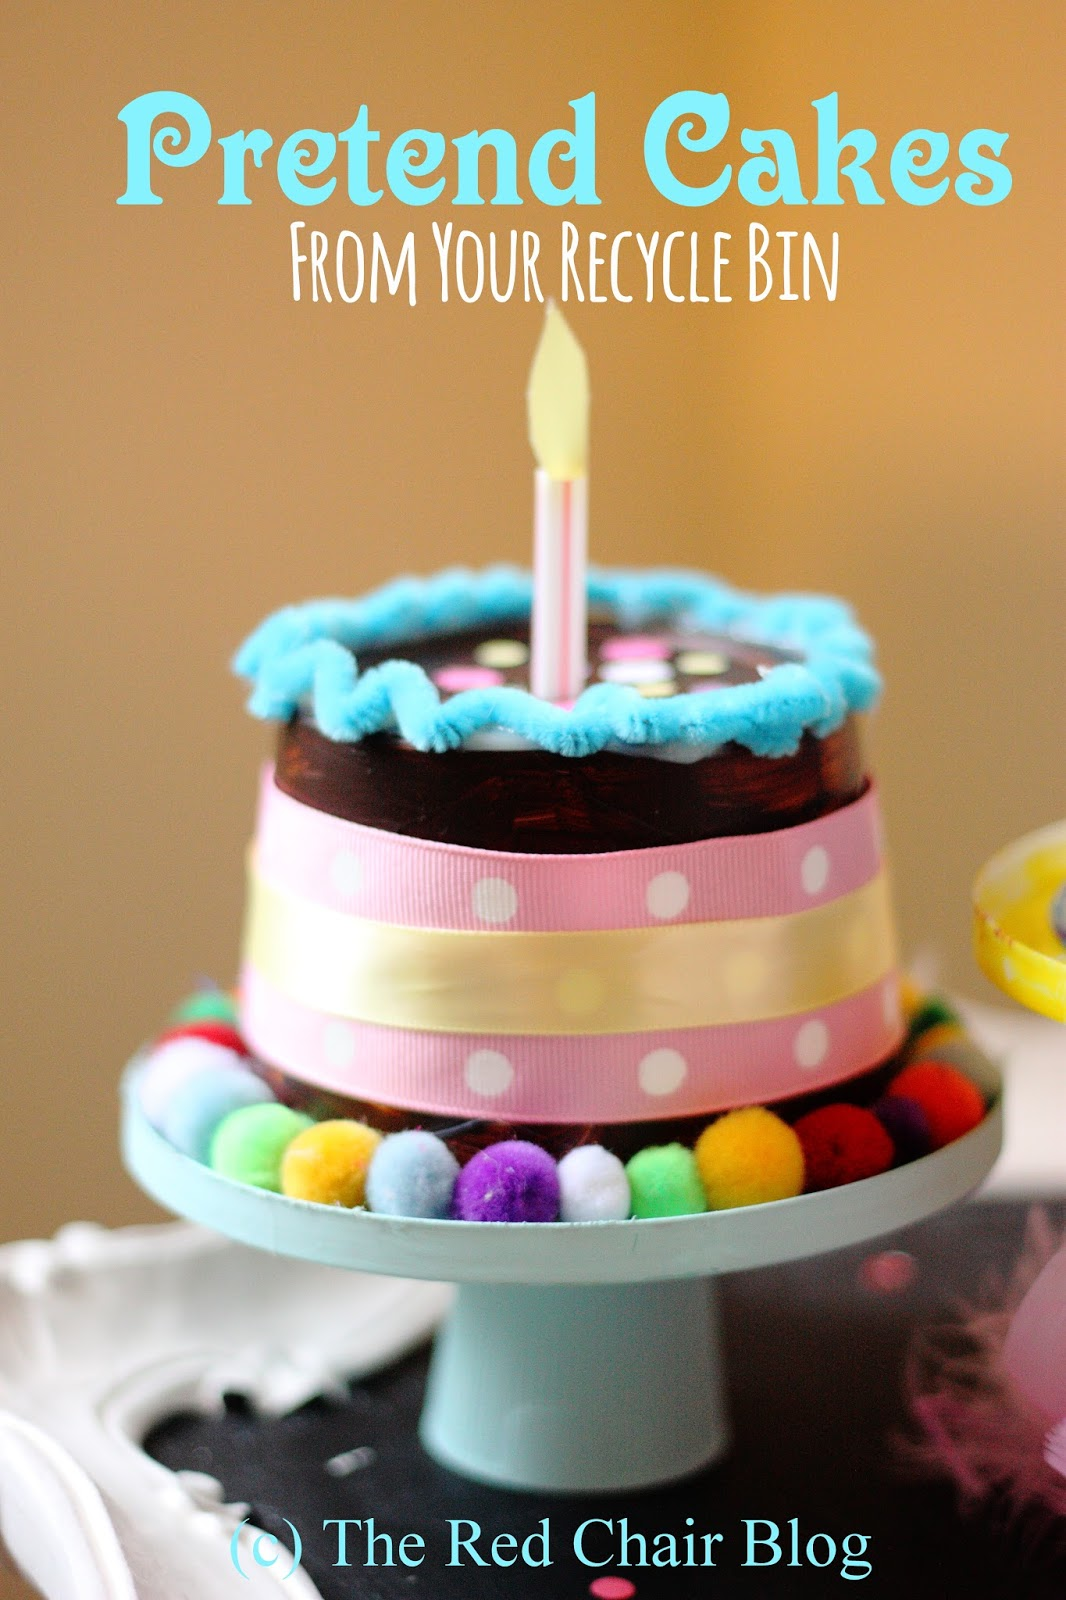 The Red Chair Blog Diy Play Cakes From Your Recycle Bin